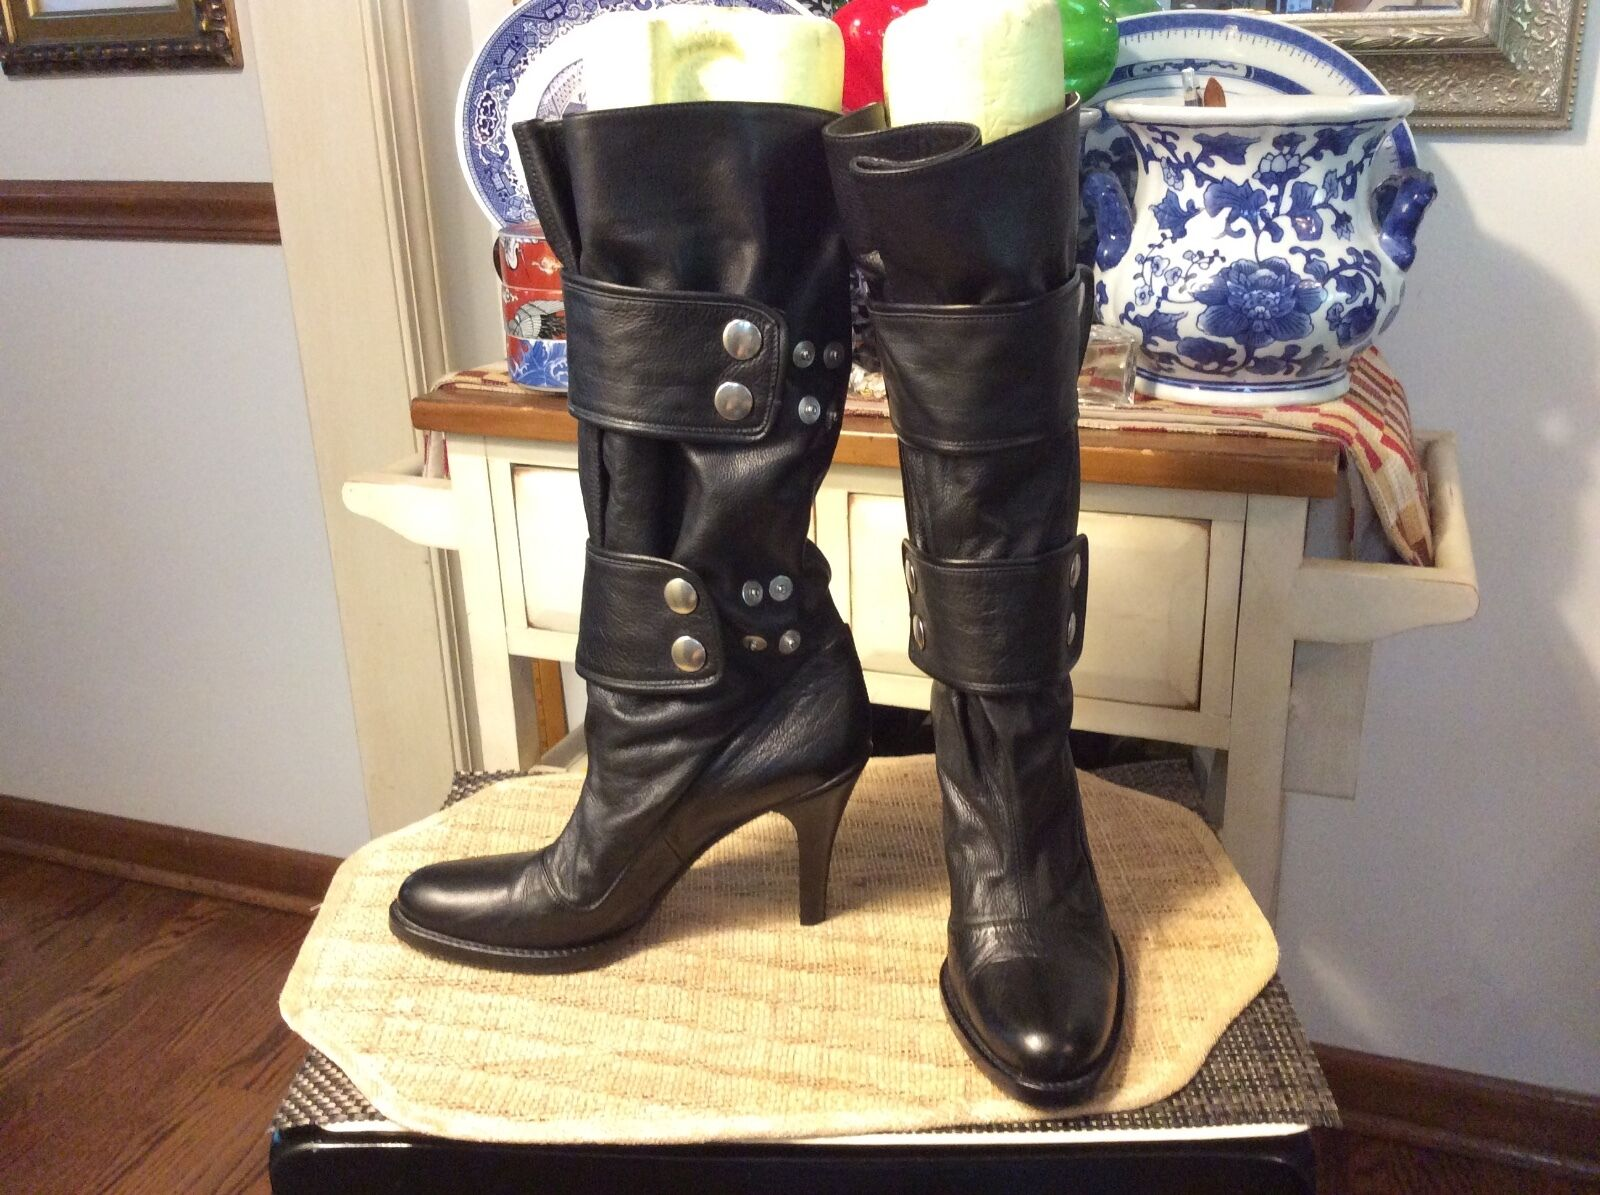 HABILLE / ITALY / MIDCALF RIDING BOOT BOOT BOOT BLACK / SZ: EU 39 / US 7.5 b550ed